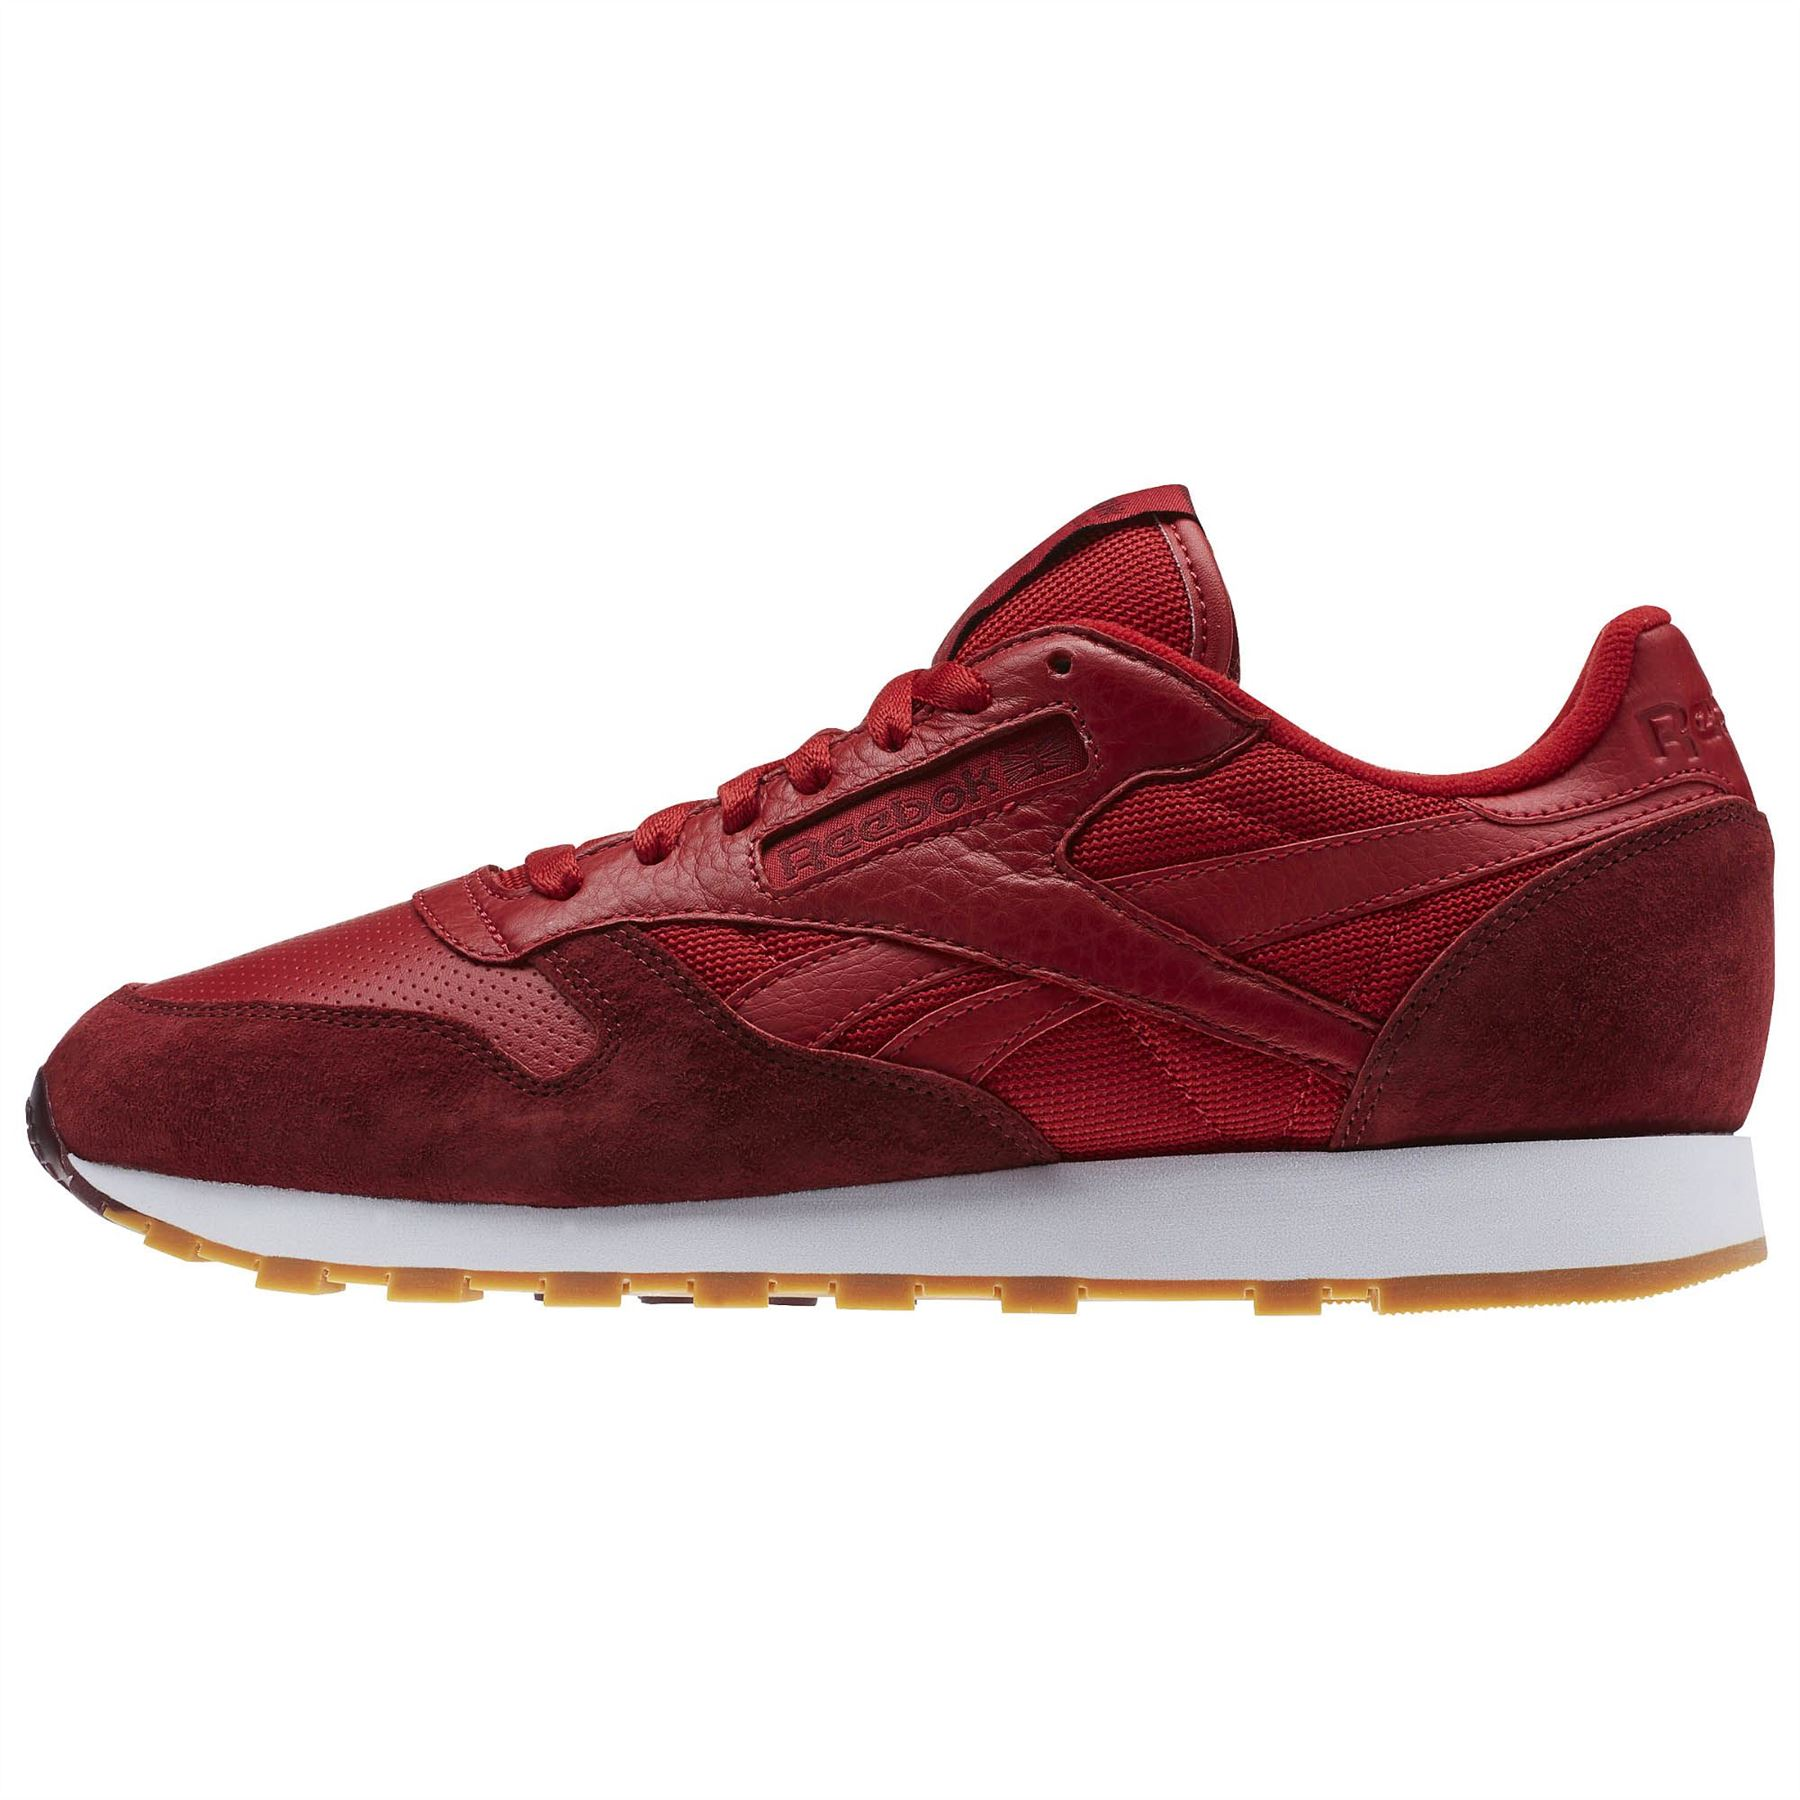 58632481fa9 ... Reebok Classic Leather Perfect Split Trainers Mens Red Footwear Shoes  Sneakers ...